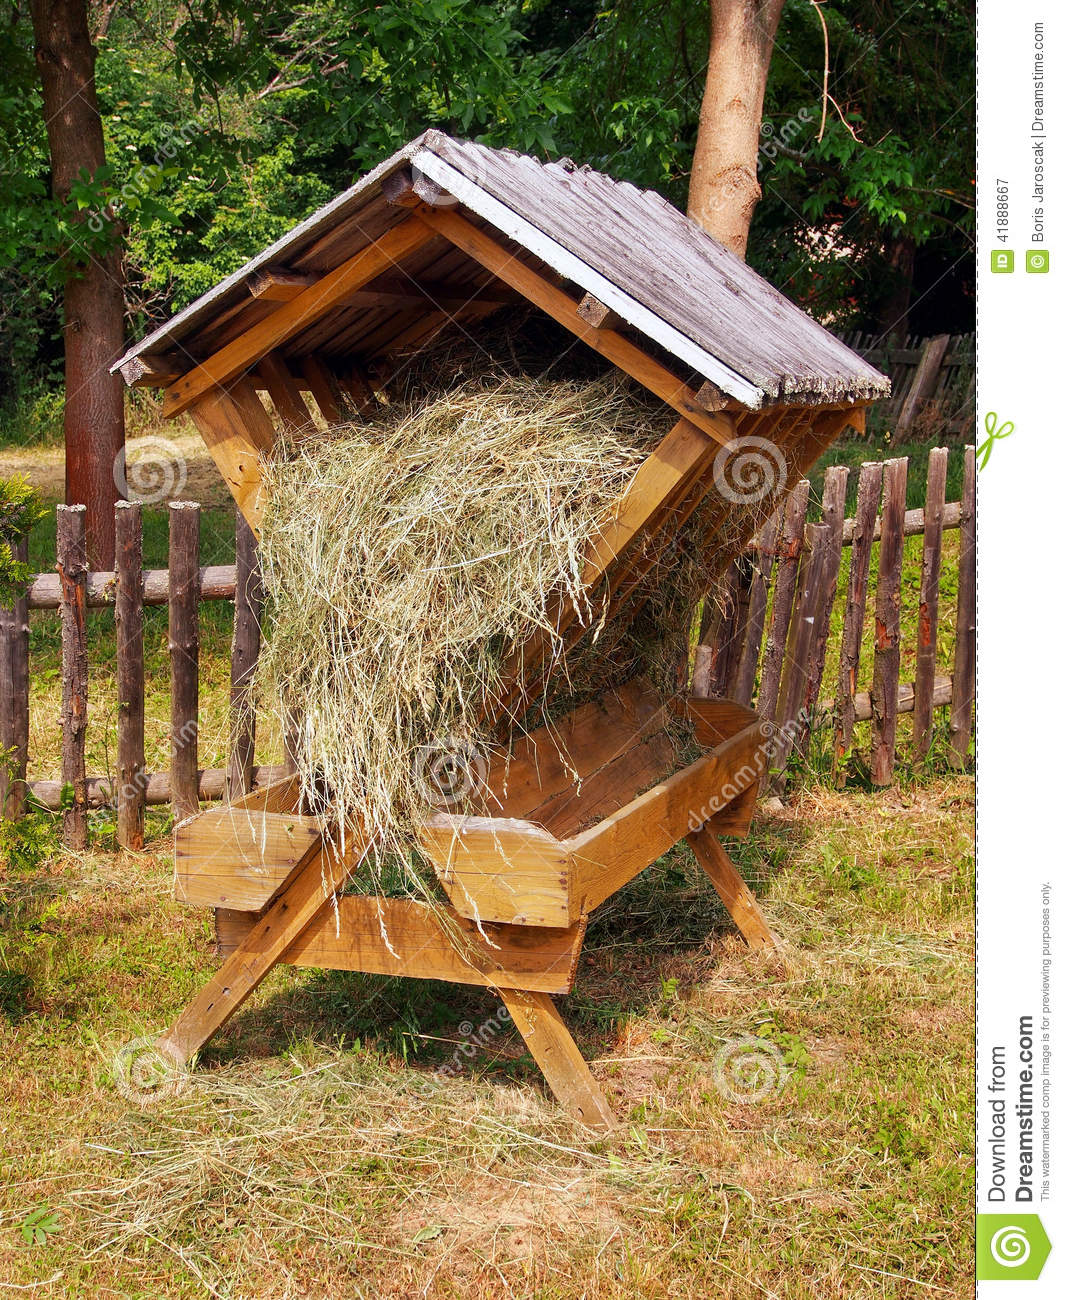 Sheltered wooden feeder fully filled with hay